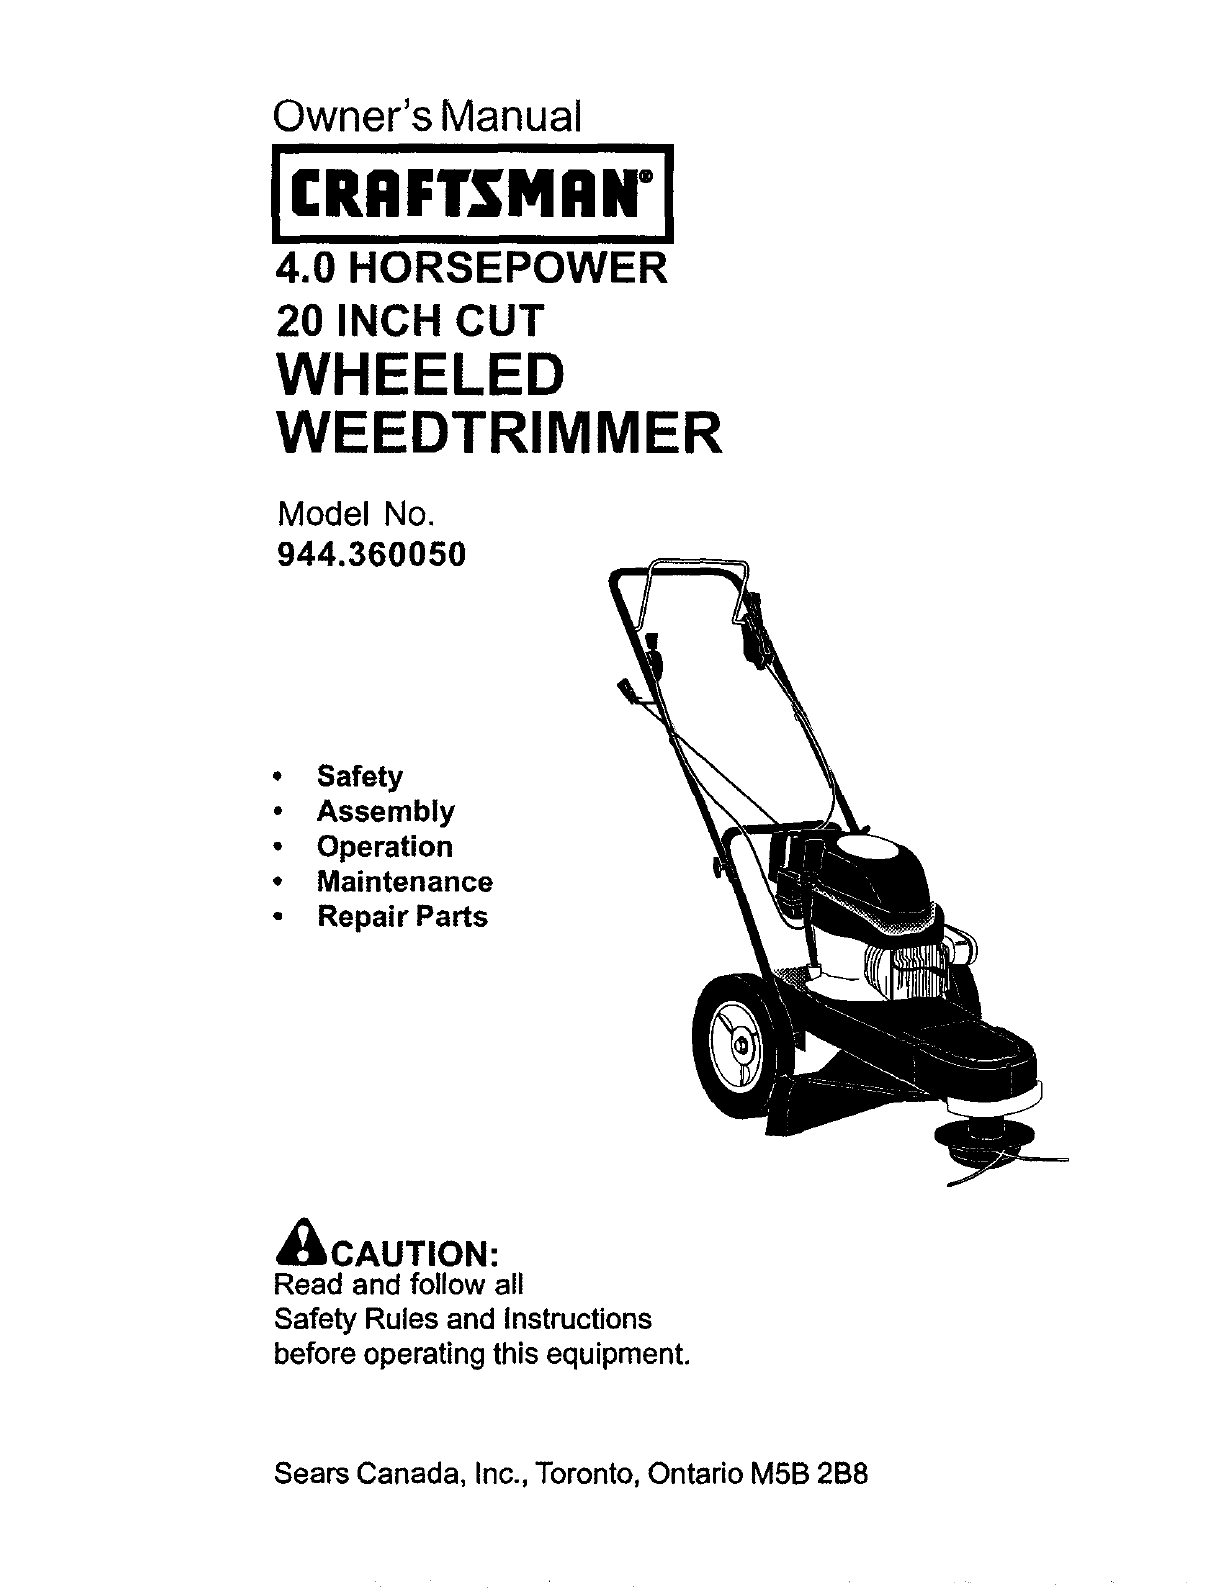 Craftsman 944360050 User Manual HIGH WHEEL WEED TRIMMER